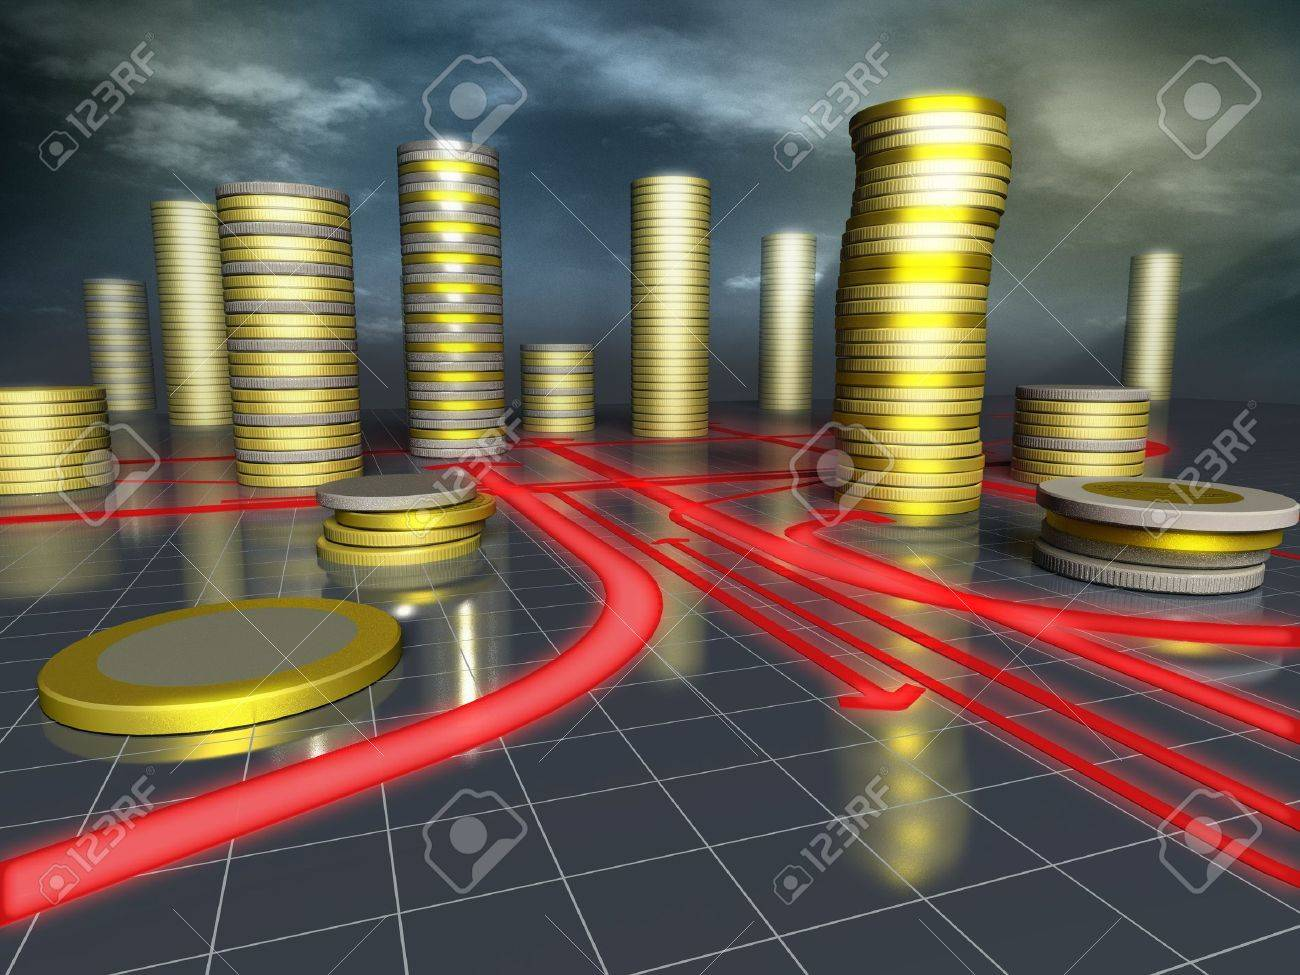 3d image of skyscrapers city made up of coins Stock Photo - 11177579